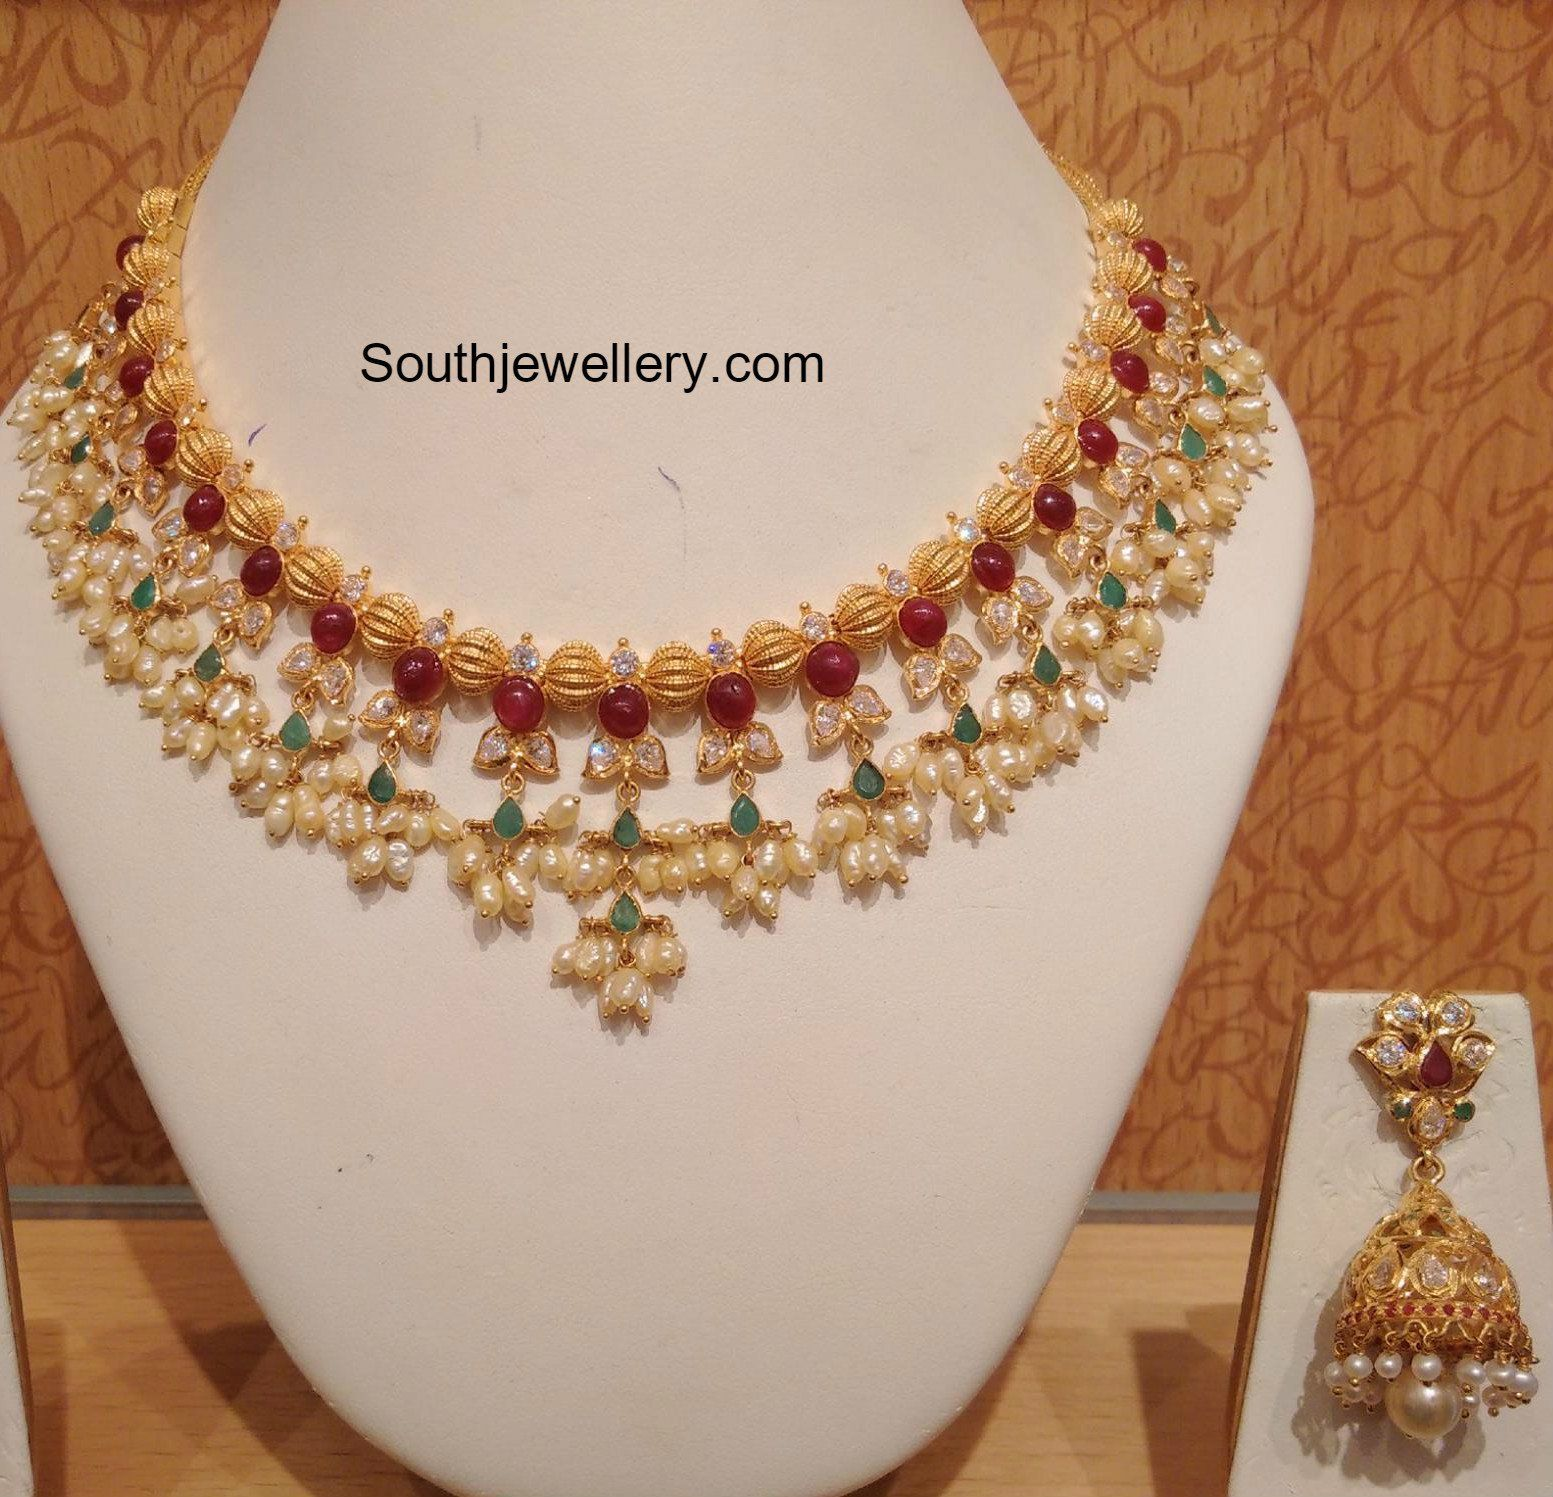 Latest gold necklace designs in grams pachi necklace latest jewellery - Pearls Necklace Latest Jewelry Designs Page 4 Of 30 Jewellery Designs